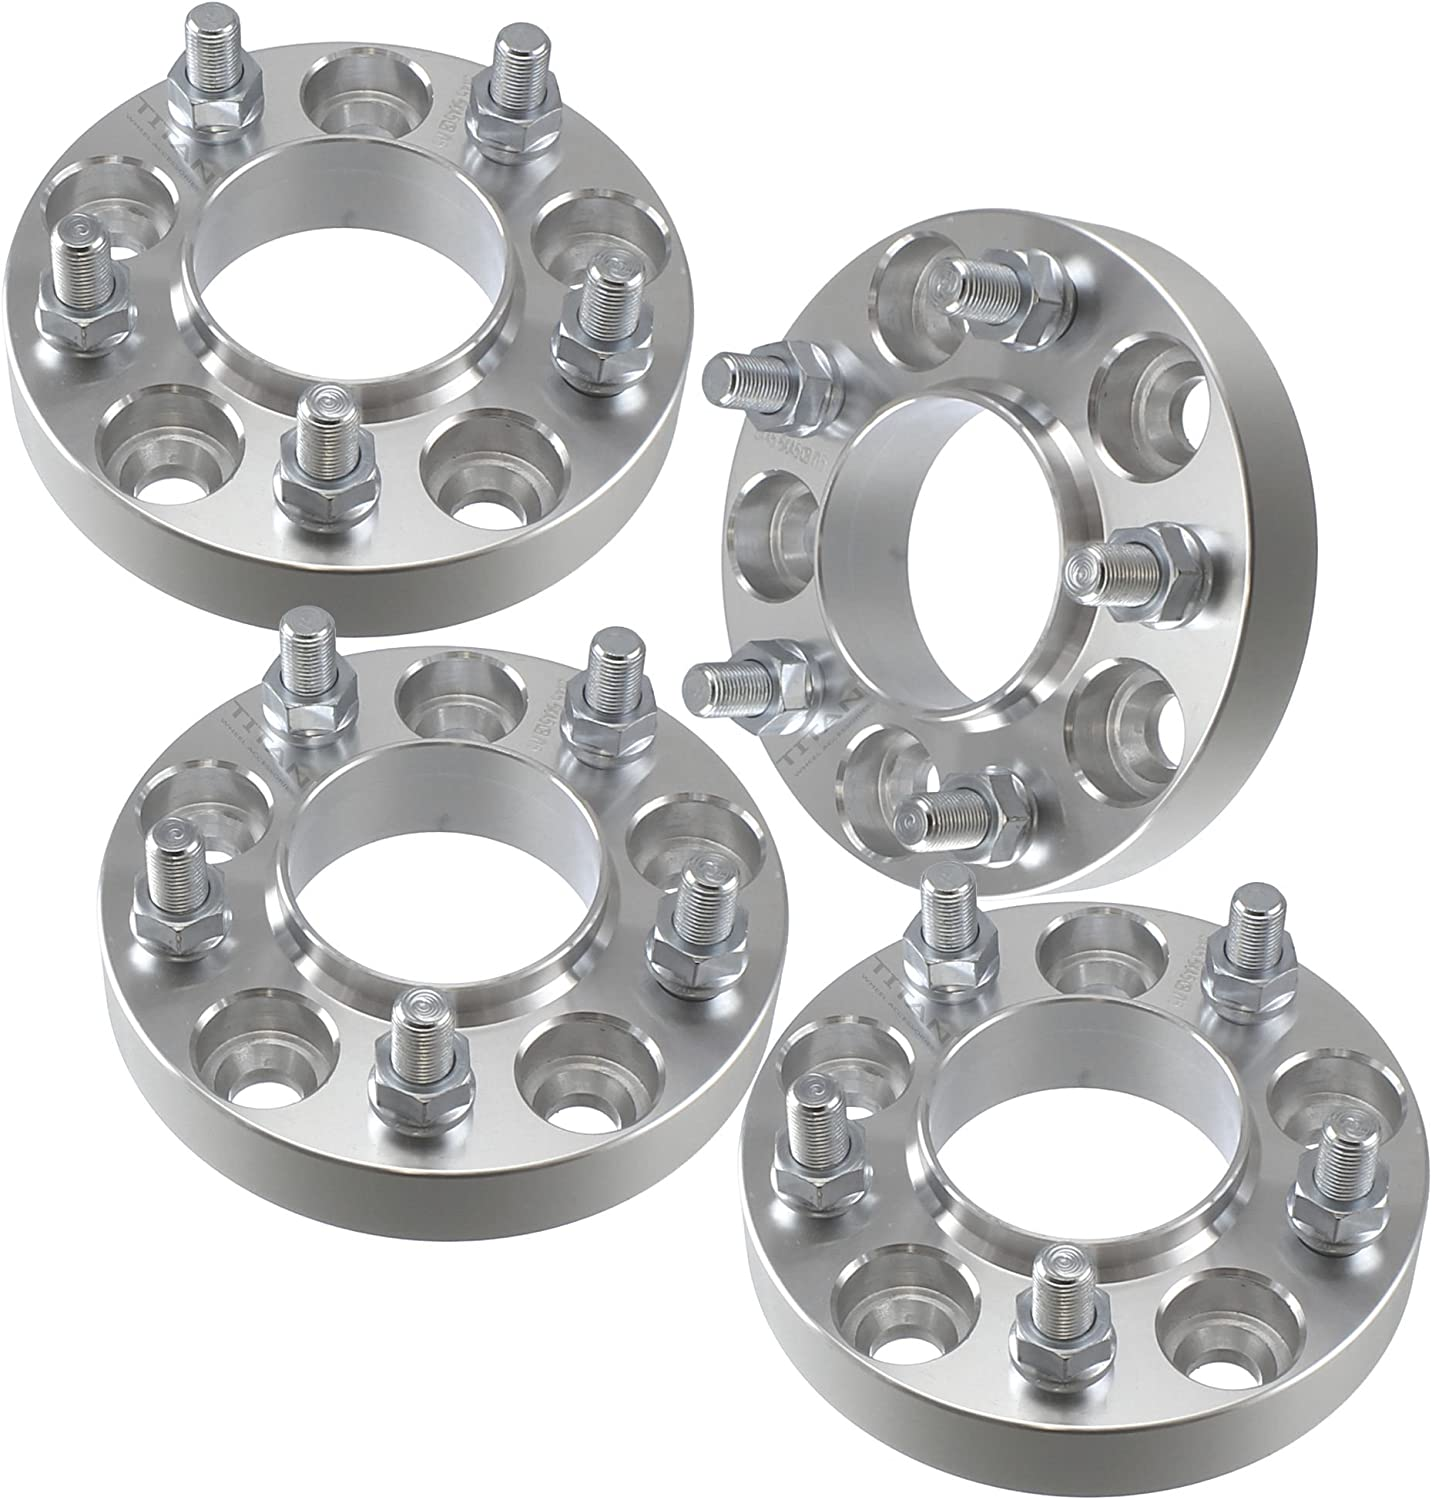 """Wheel Spacers Hub Centric Jeep Converts YJ TJ to JK 5x4.5 to 5x5 1.25/"""" Thick"""